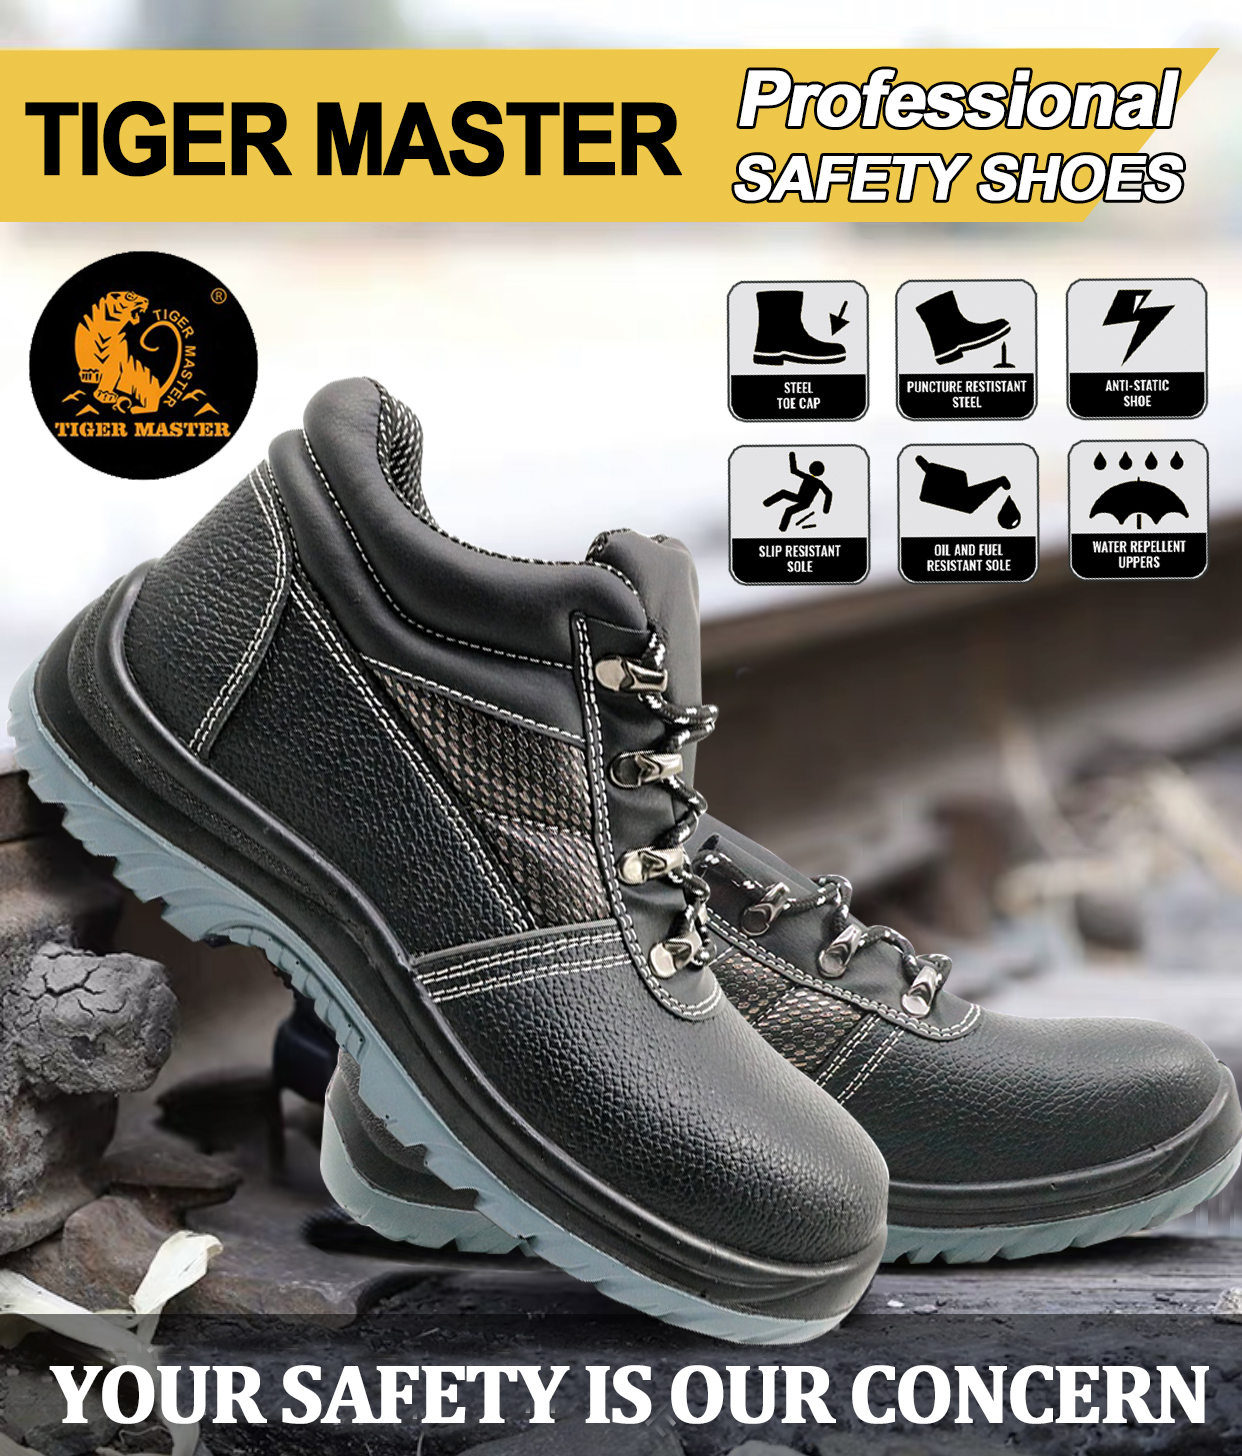 TM002 SAFETY SHOES